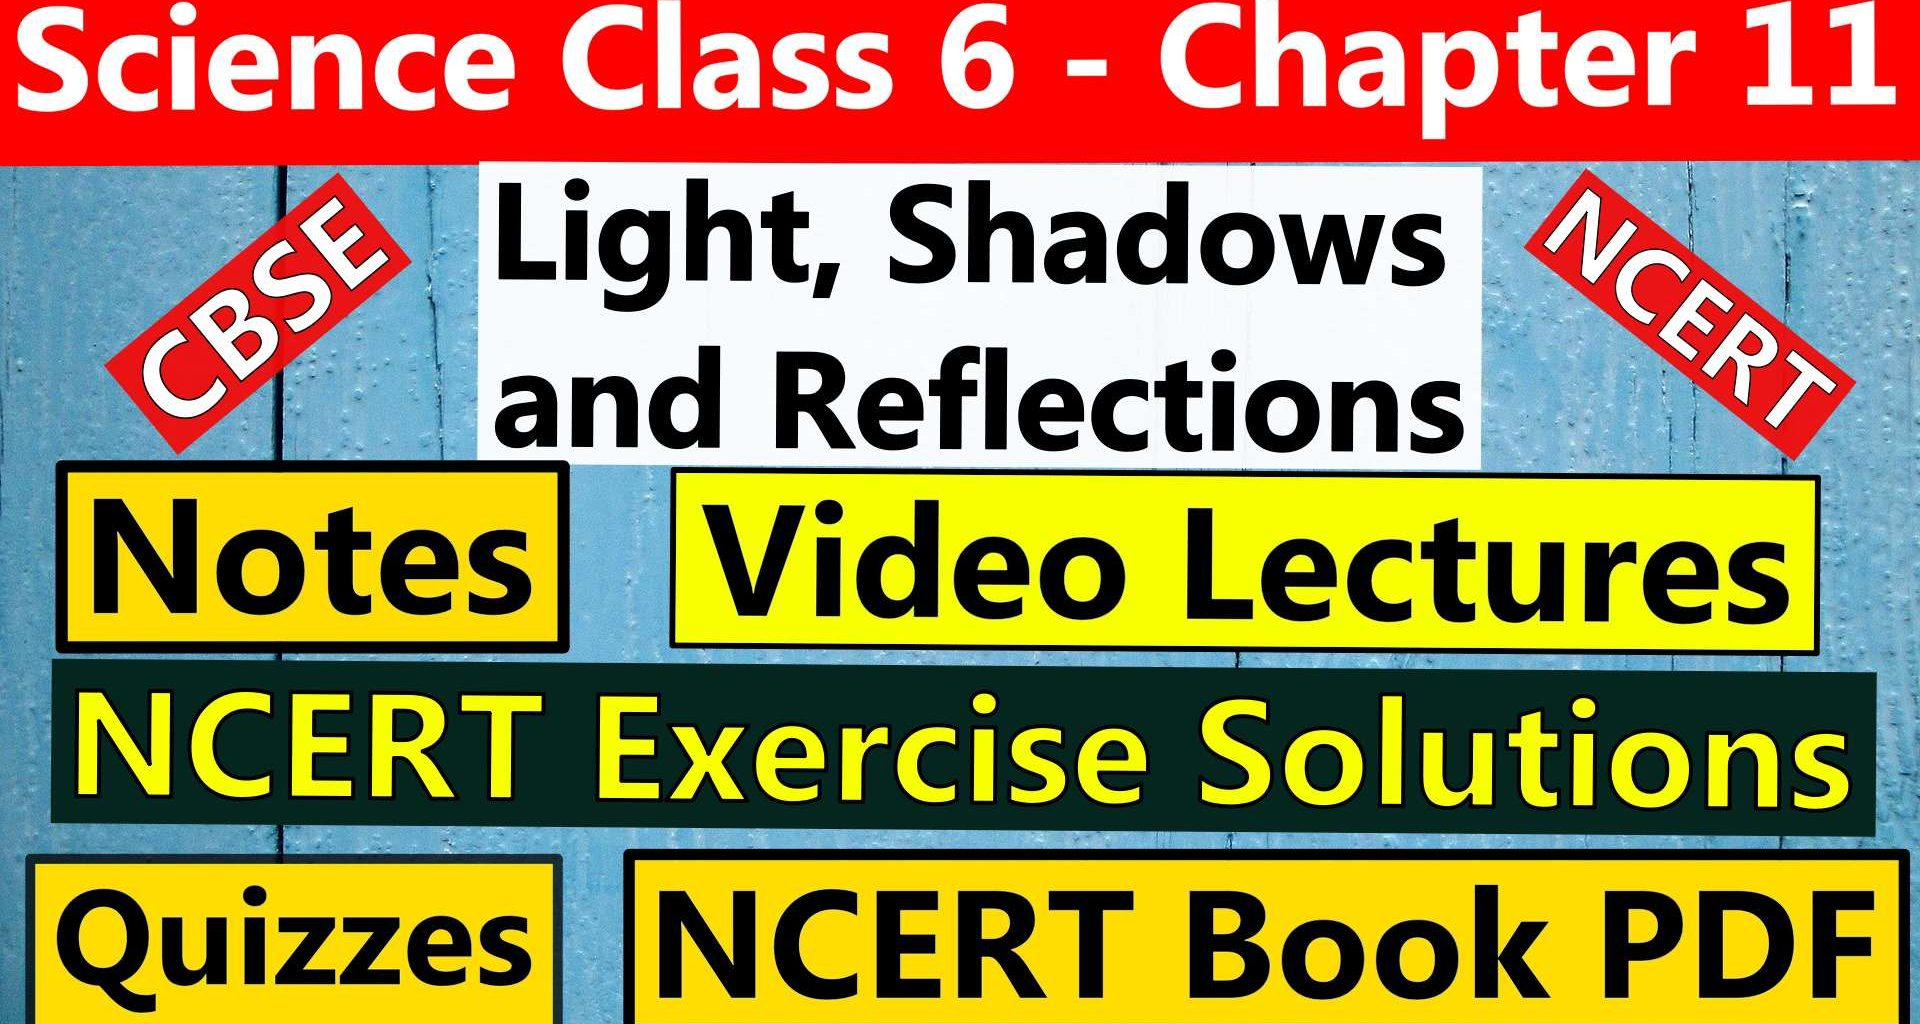 Science Class 6 - Chapter 11 -Light, Shadows and Reflections